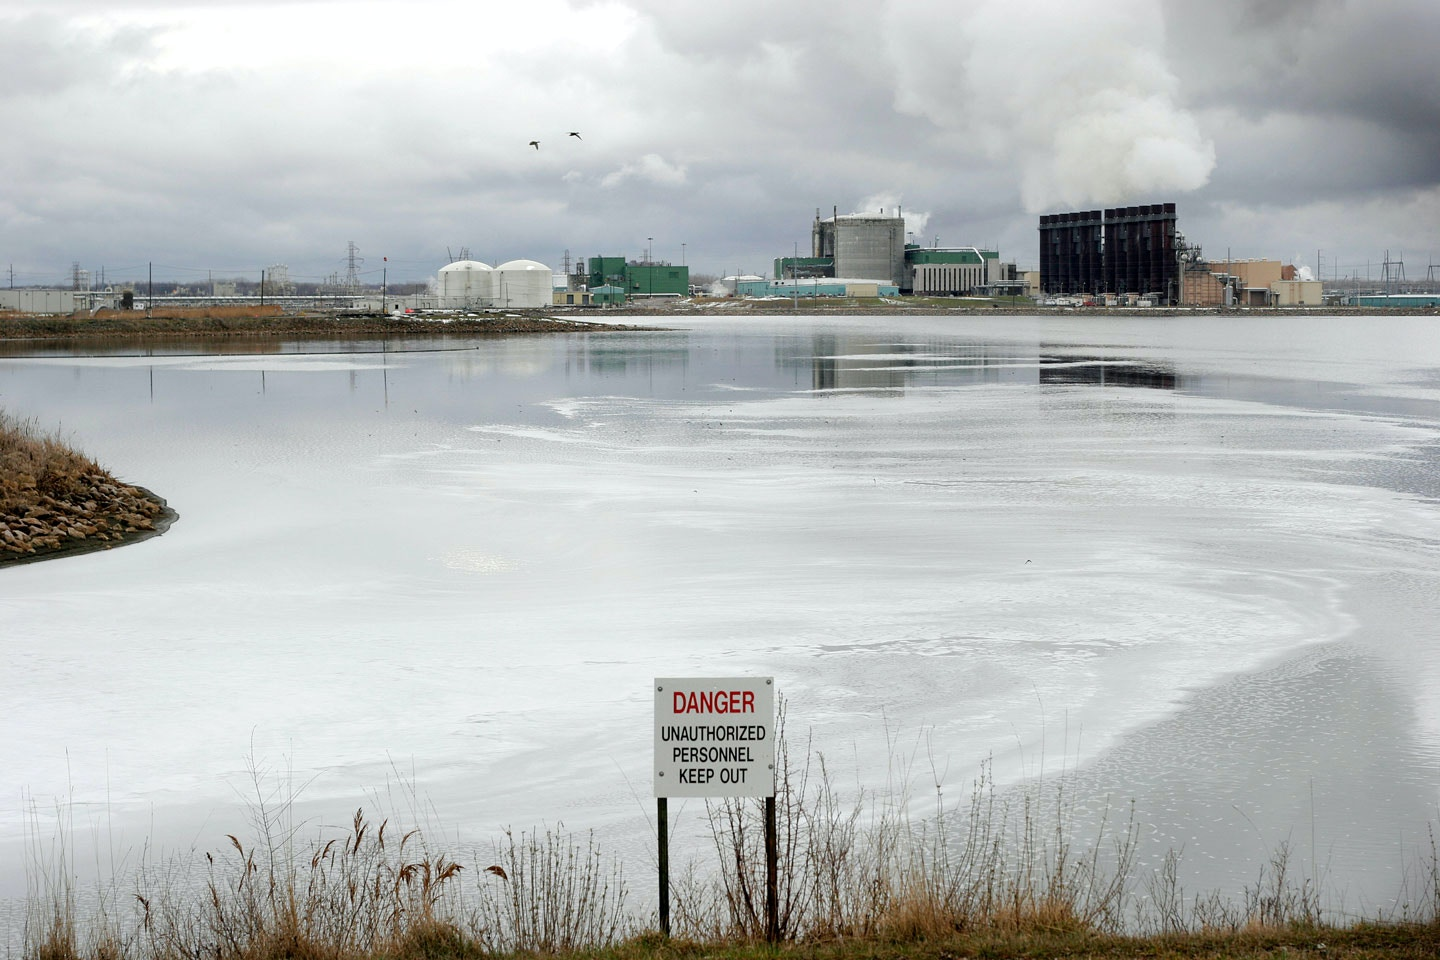 MIDLAND, MI  - APRIL 12:  A small portion of the Dow Chemical plant is shown from a park overlook April 12, 2007 in Midland, Michigan  Dow fired two of its executives April 12, 2007 for alledgedly having unauthorized discussions with a third party about a potential buyout. (Photo by Bill Pugliano/Getty Images)